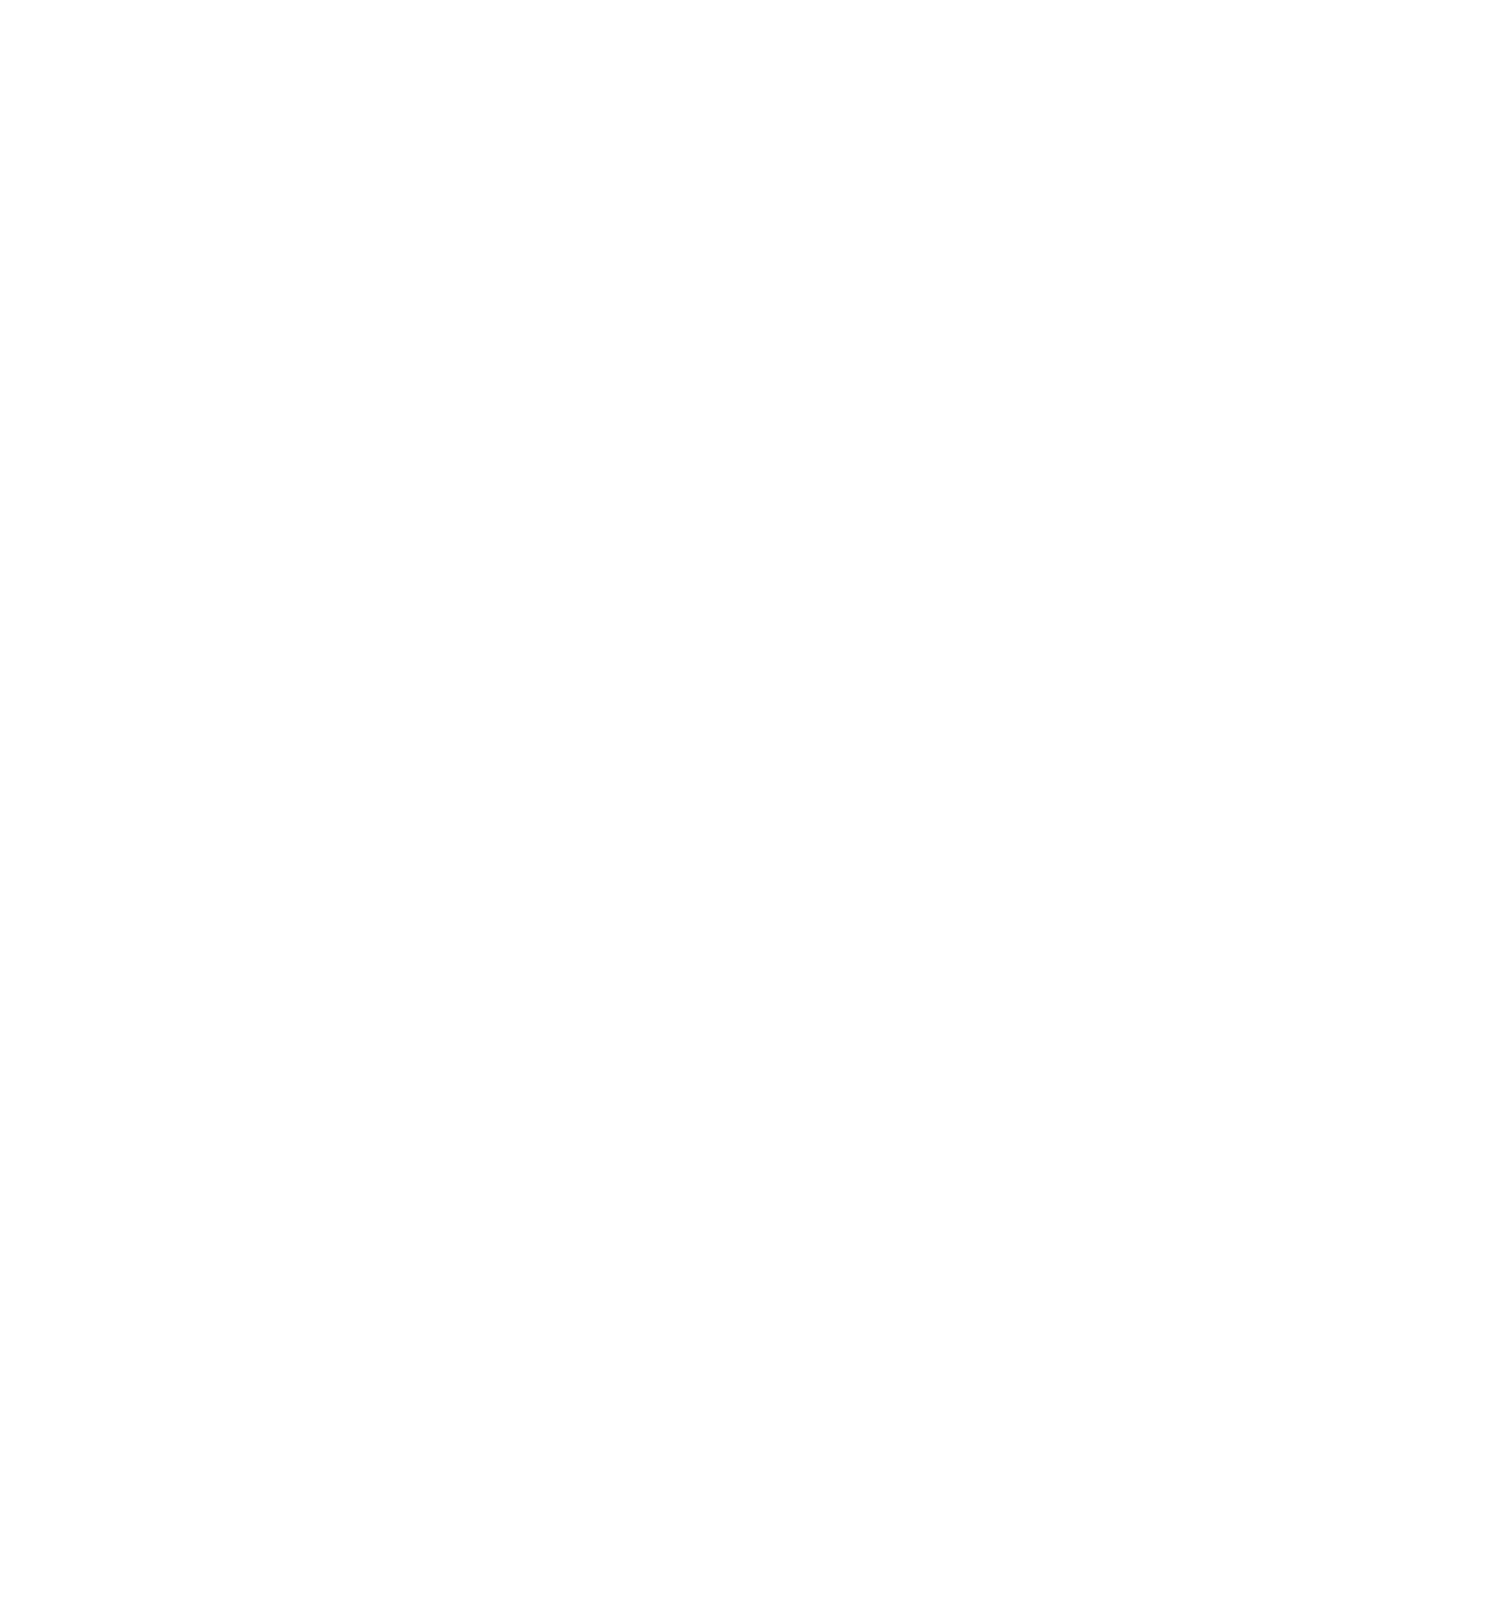 Training Camps — Pine Ranch Dog Training & Boarding